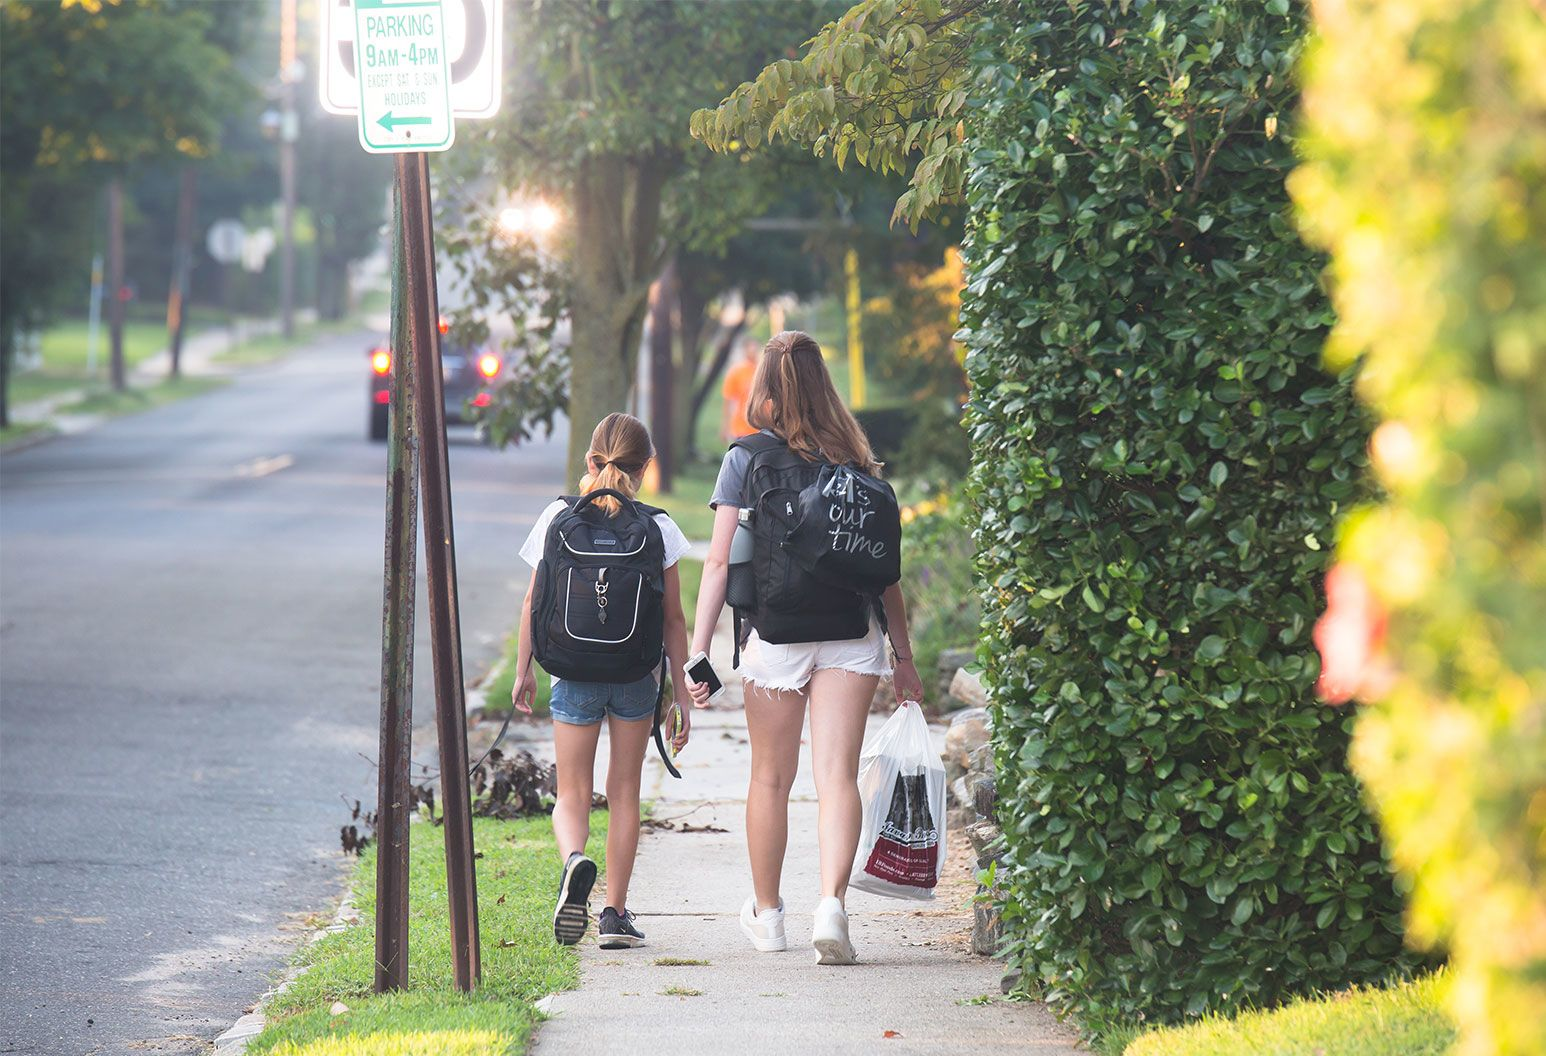 Kids walking to school - Two girls are walking on a sidewalk carrying black schoolbags on their back.